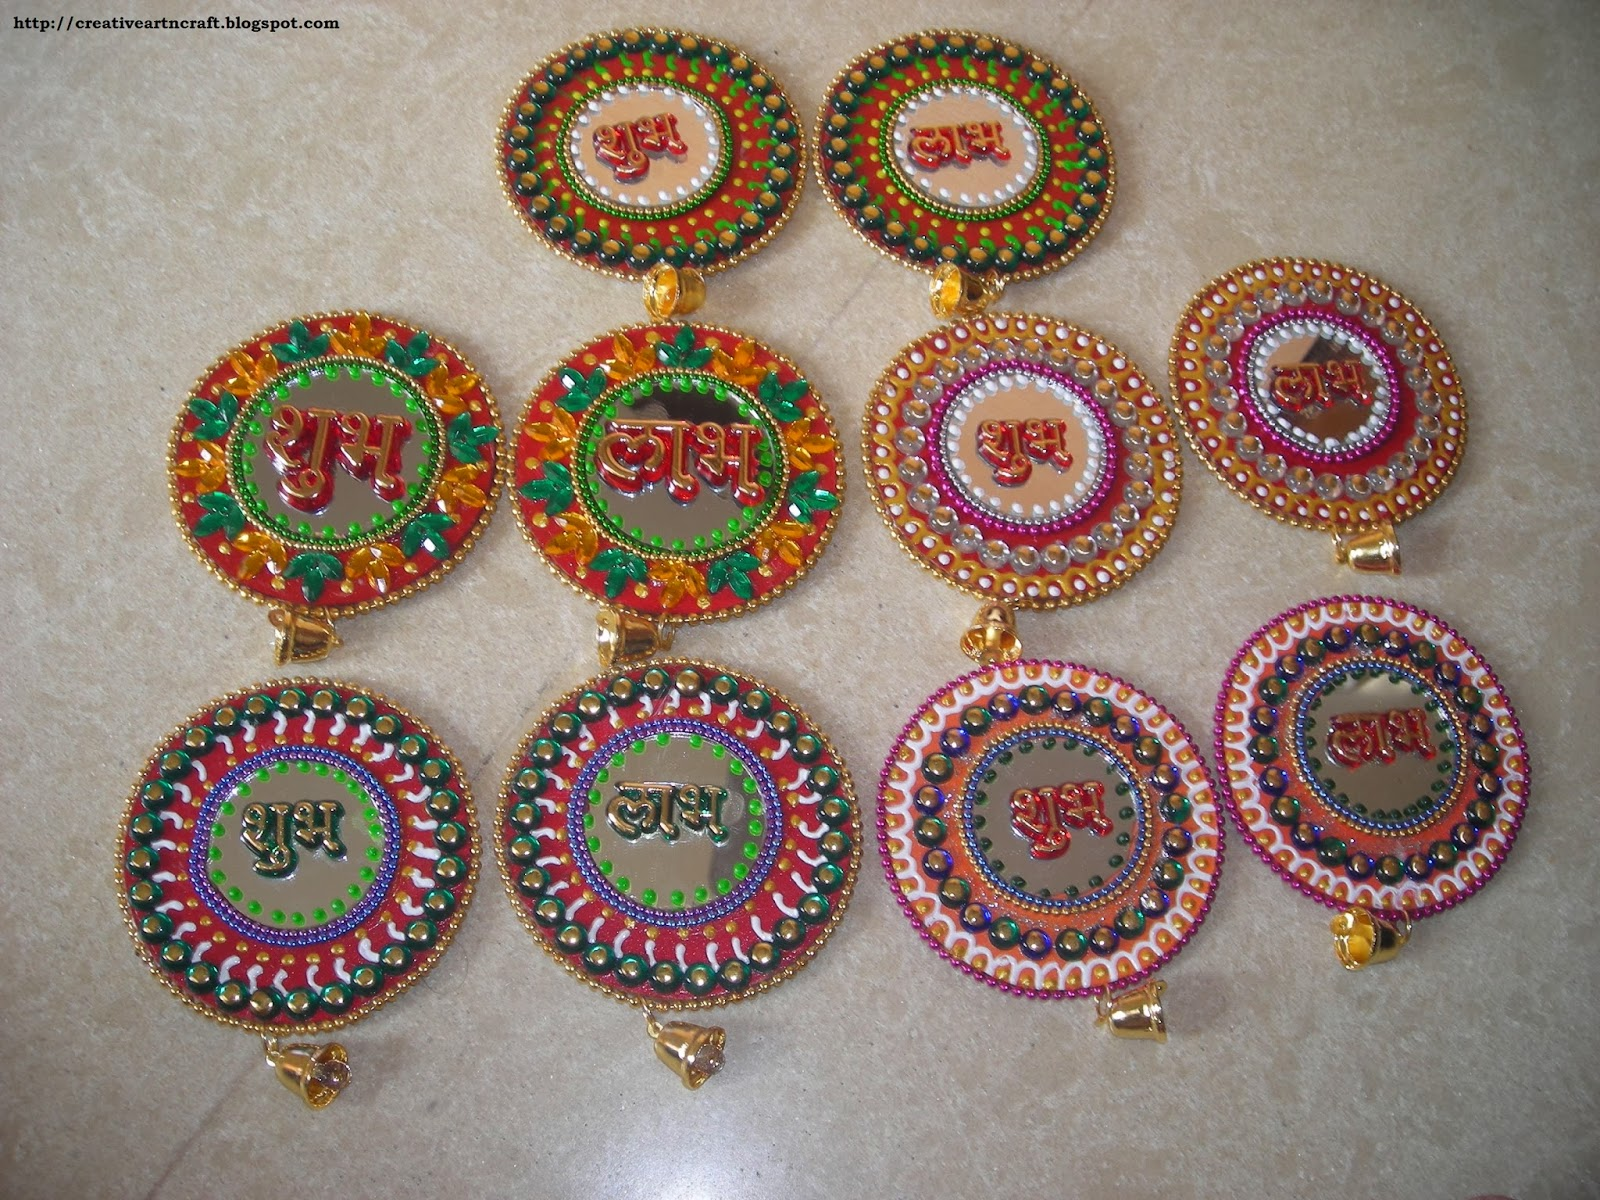 1000 images about diwali on pinterest diwali craft for Art and craft for diwali decoration